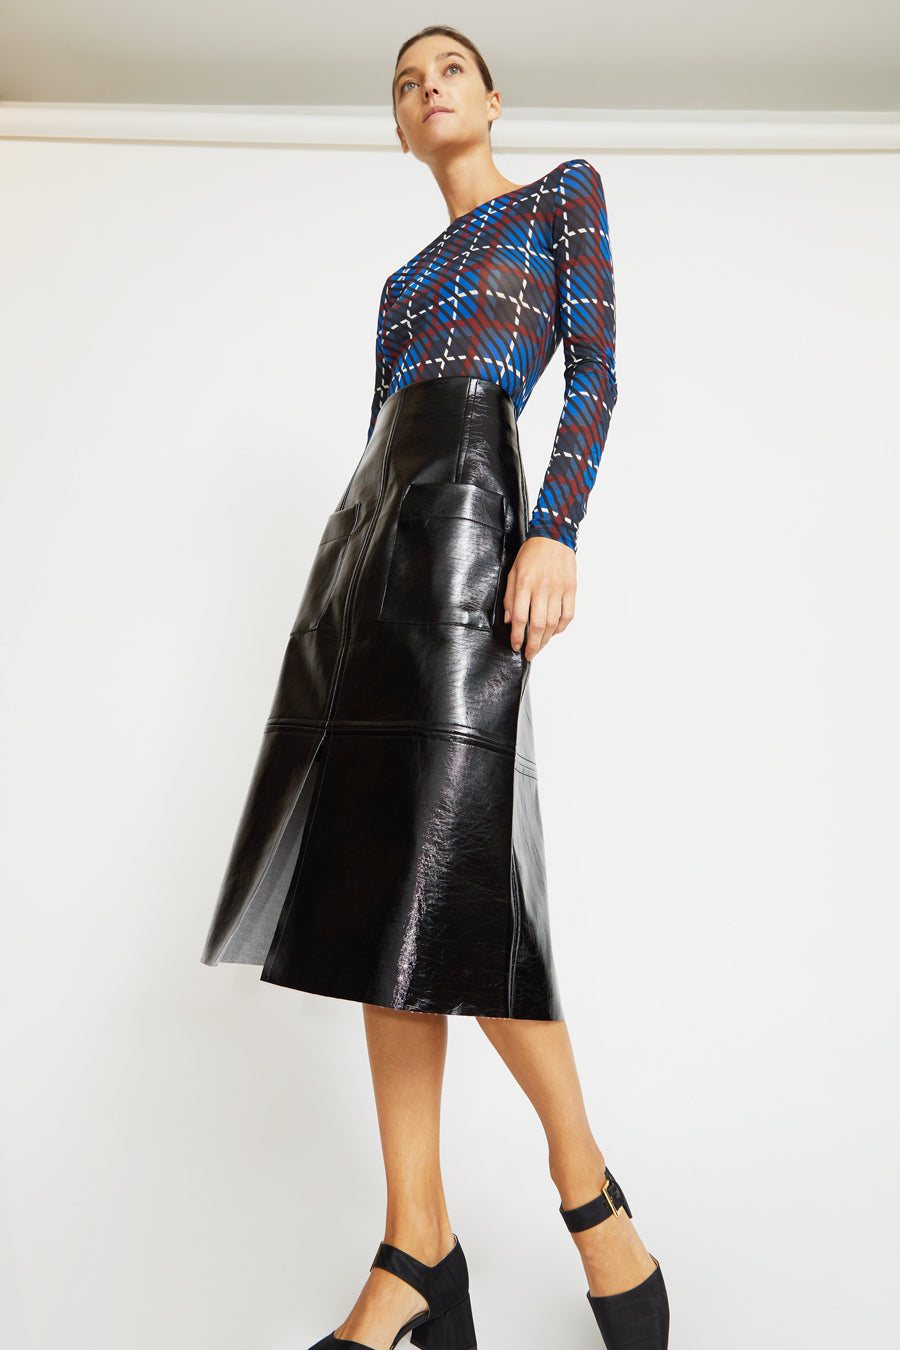 Rodebjer Lenci Sheer Jersey Top in Denim Blue Plaid